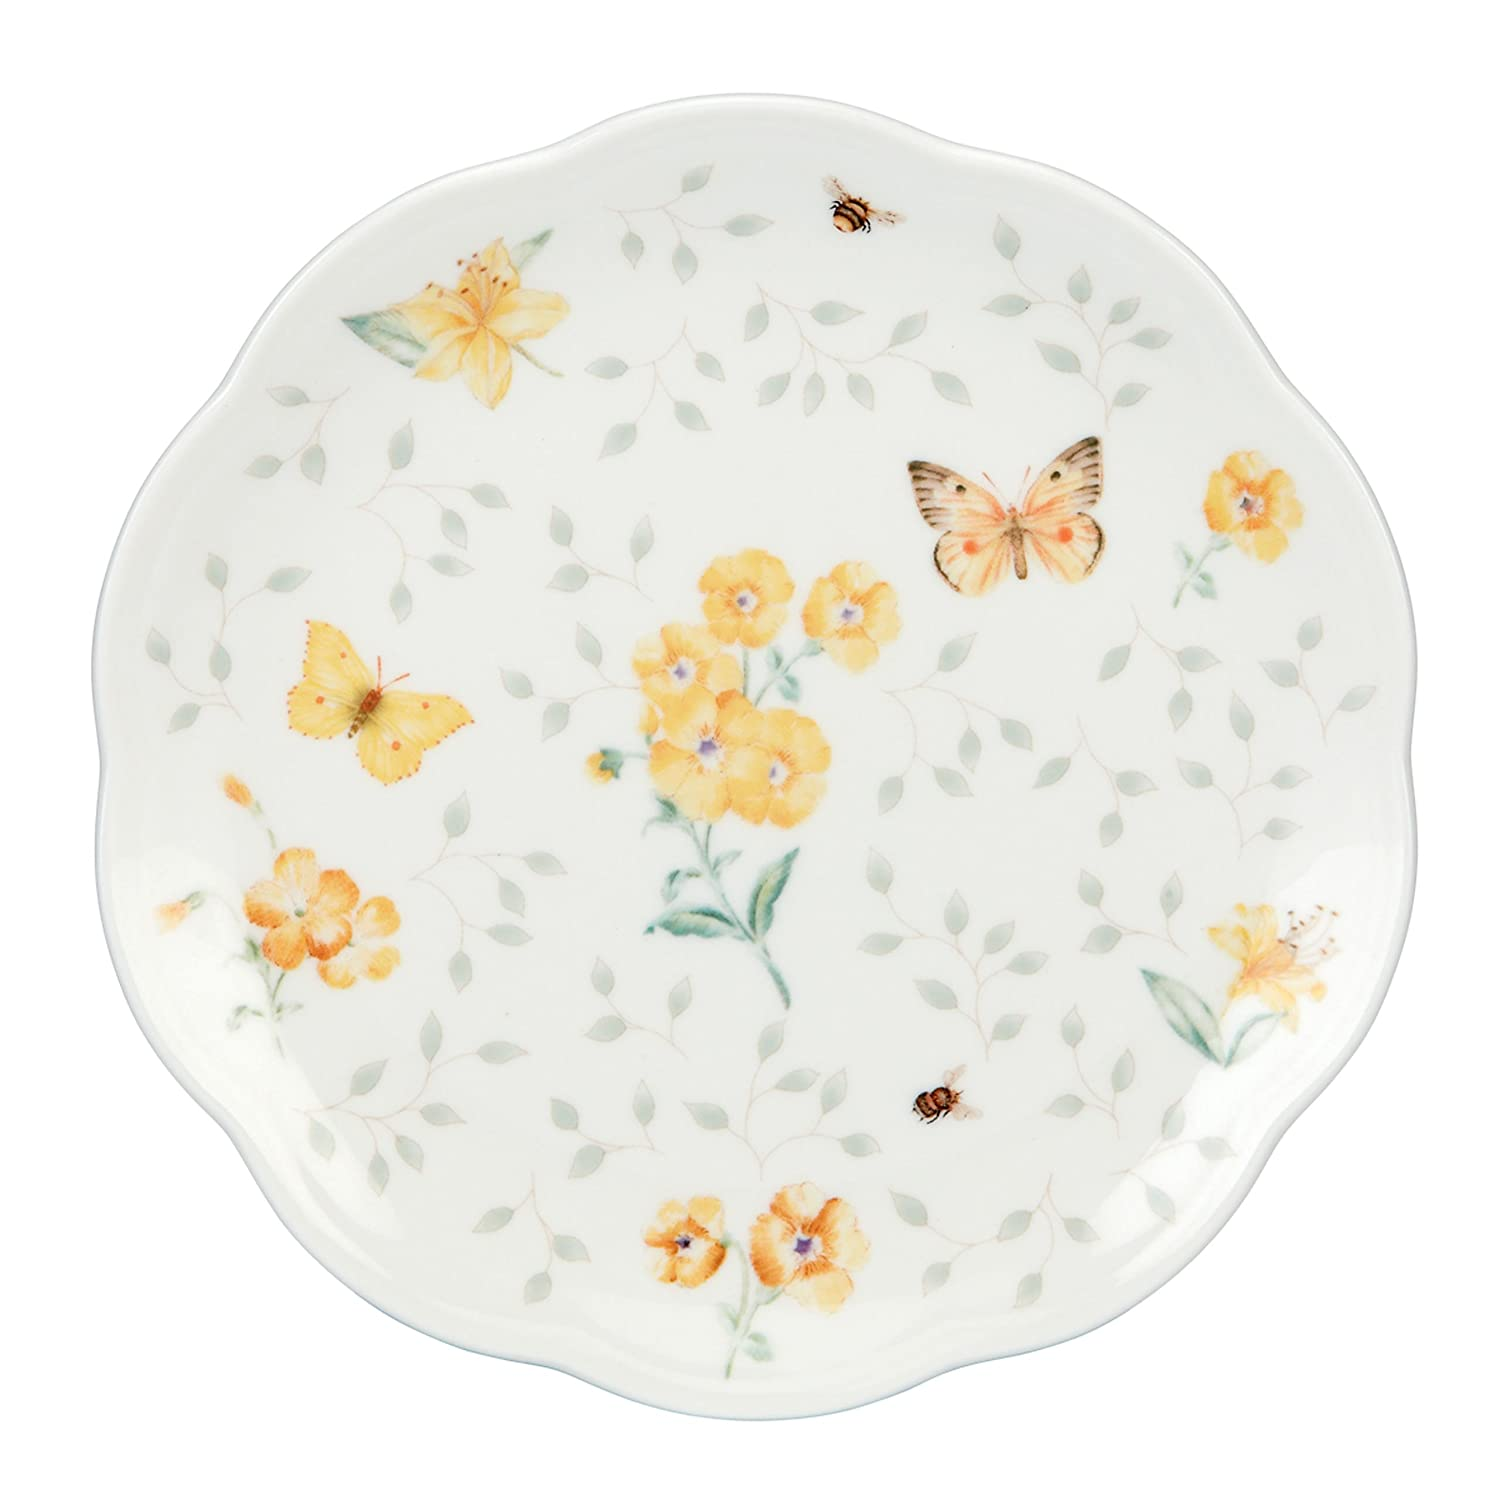 Lenox Butterfly Meadow Dessert Plates, 8-Inch, Assorted Colors, Set of 4, White - 829050